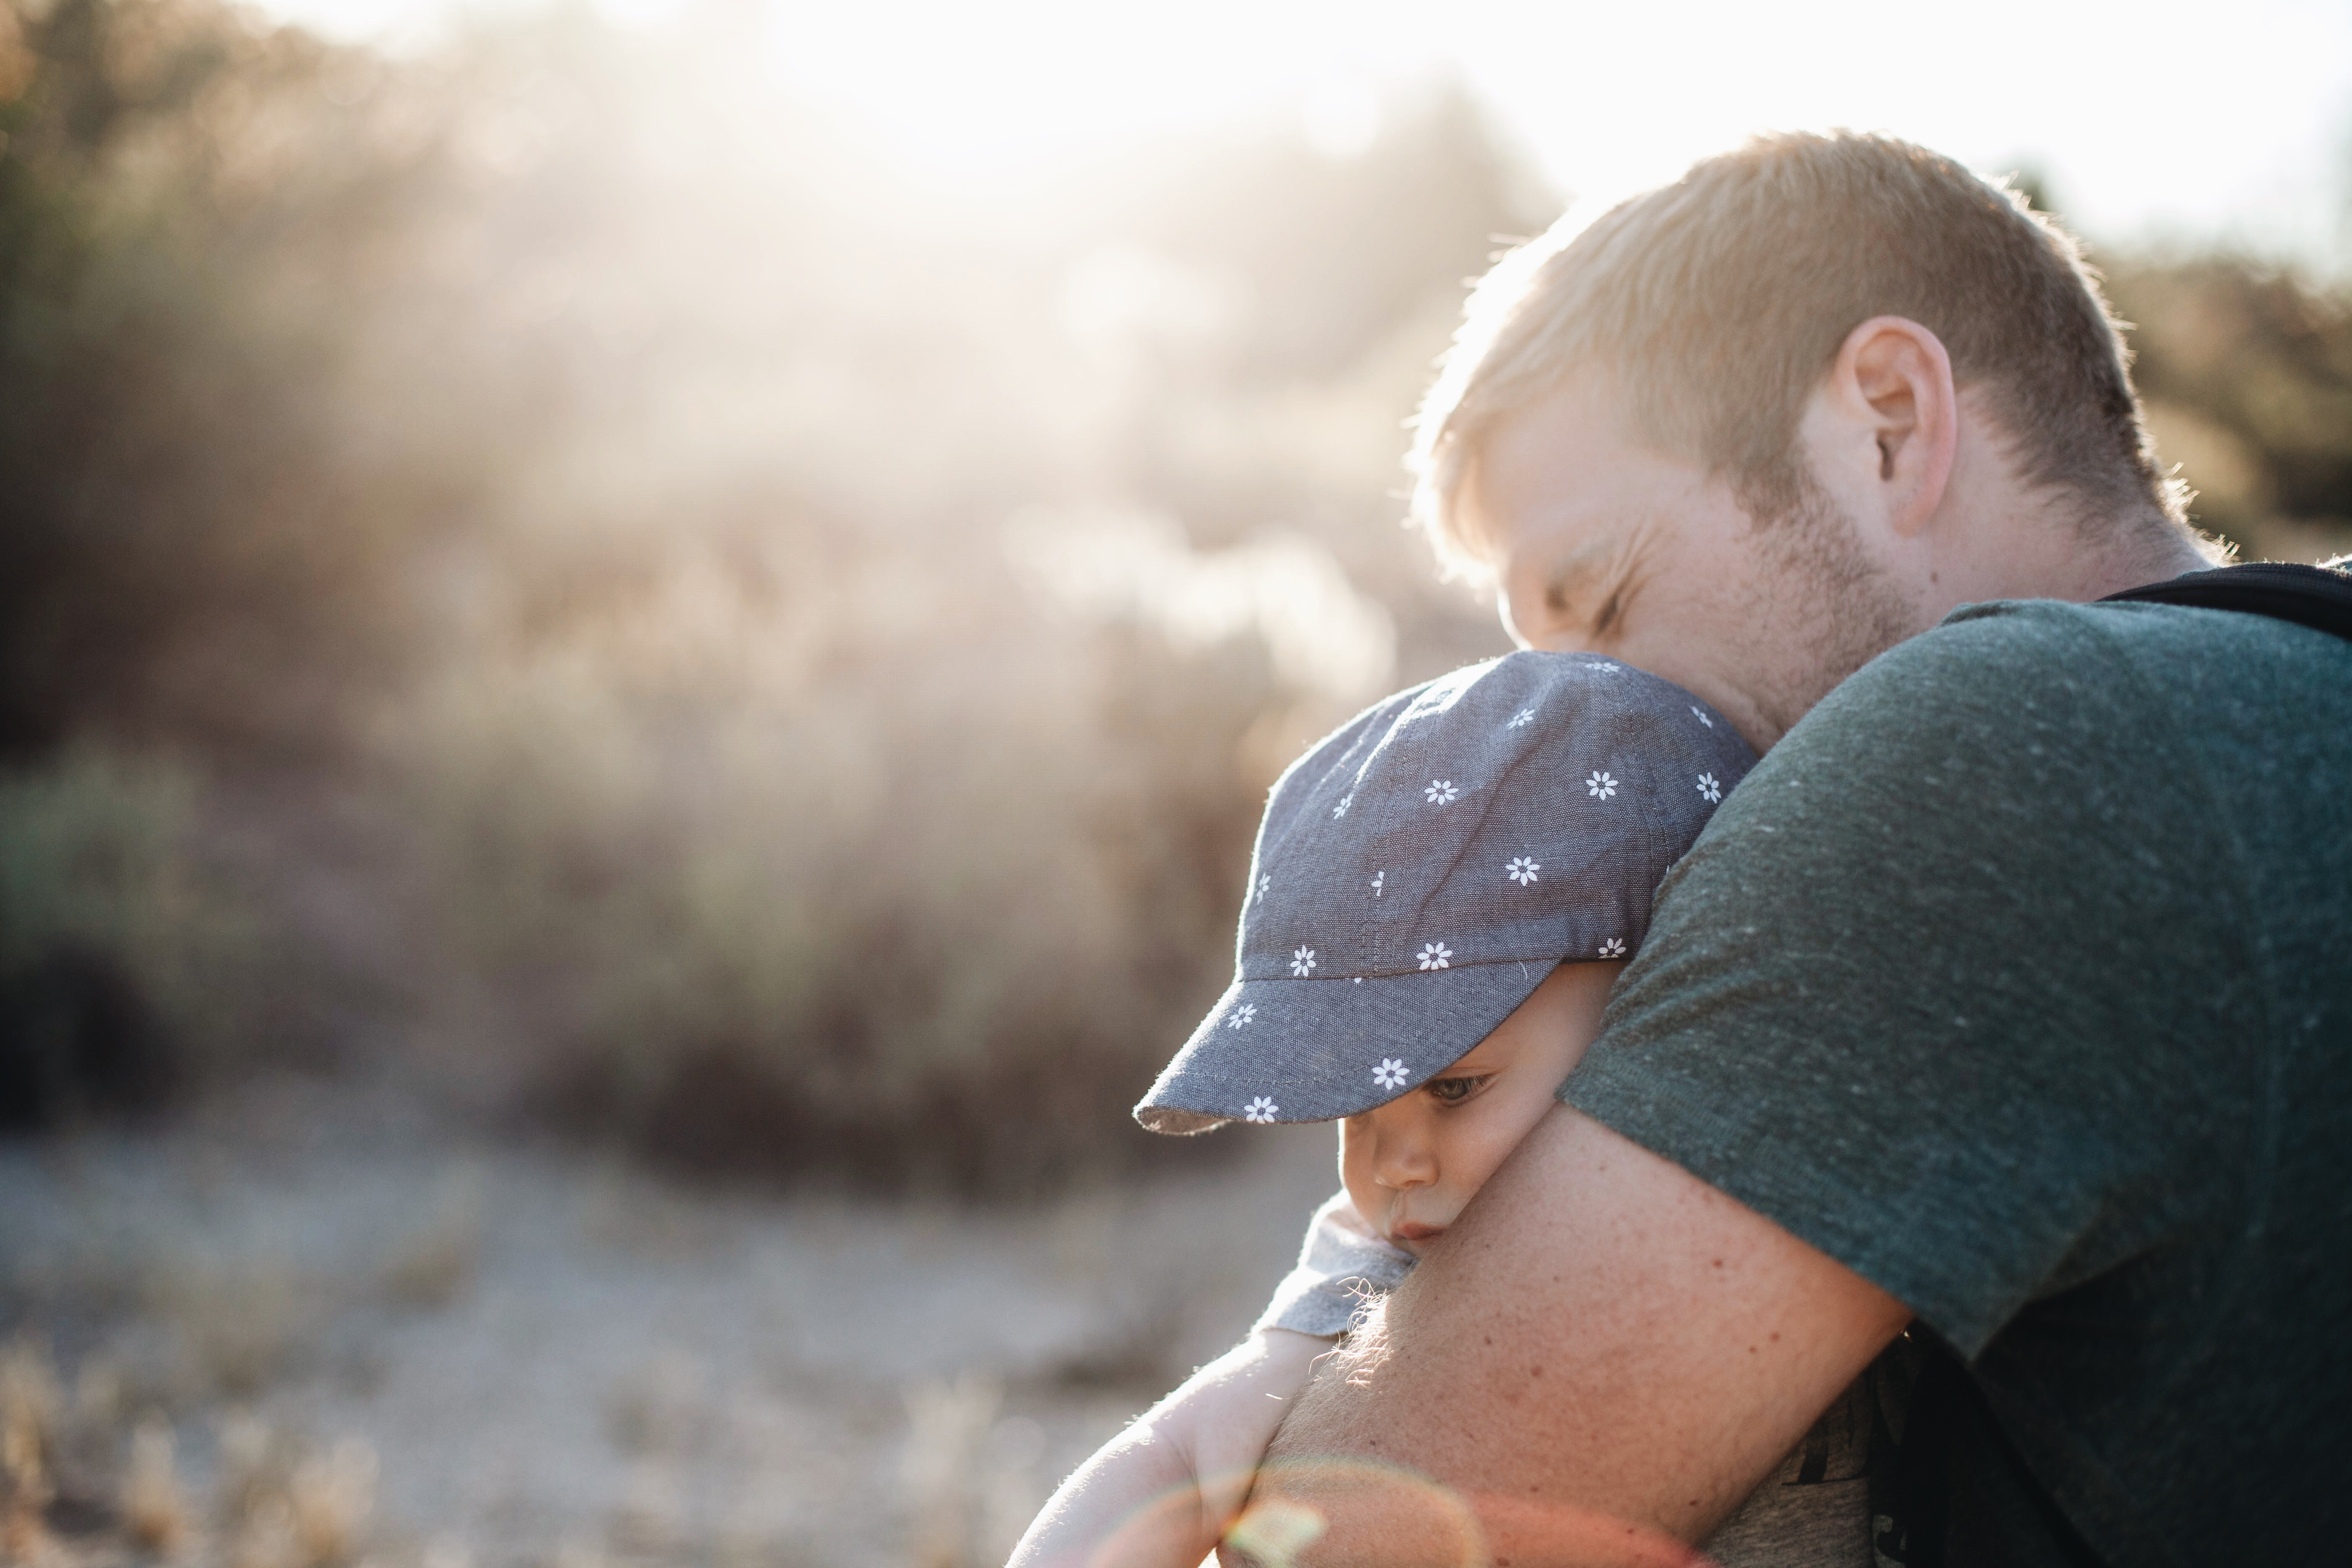 Man Hugging the Baby in Blue Floral Fitted Cap during Daytime, Child, Cute, Dad, Father, HQ Photo